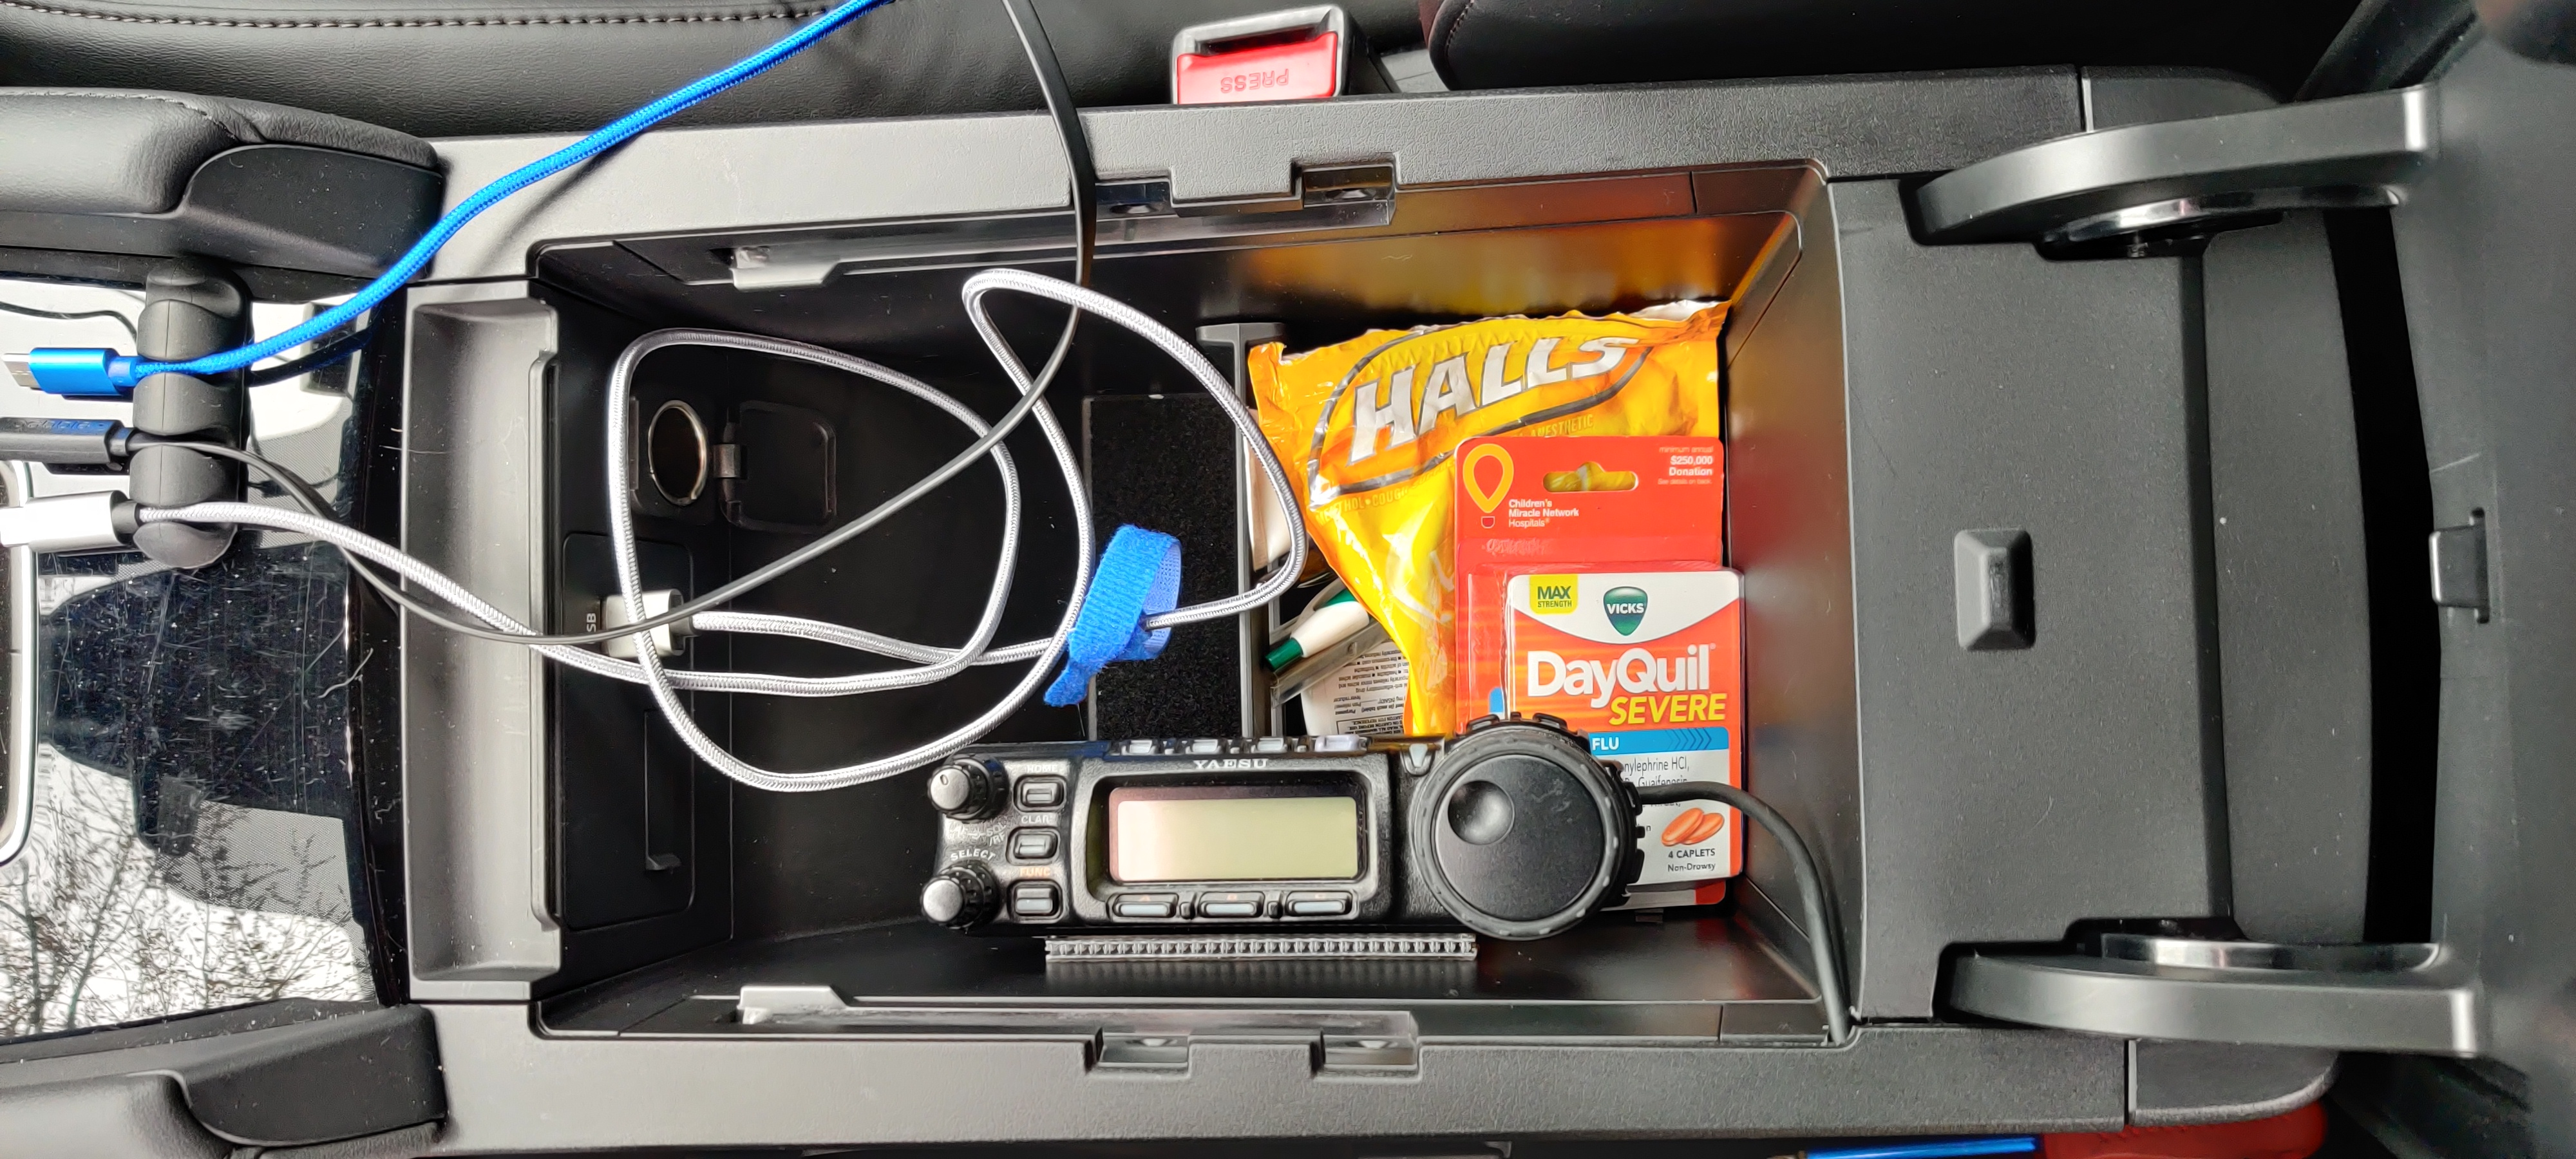 FT-857D head mounting inside center console storage bin. Note the one and only accessory port in the car, and the cable neatly going under the trim panel...